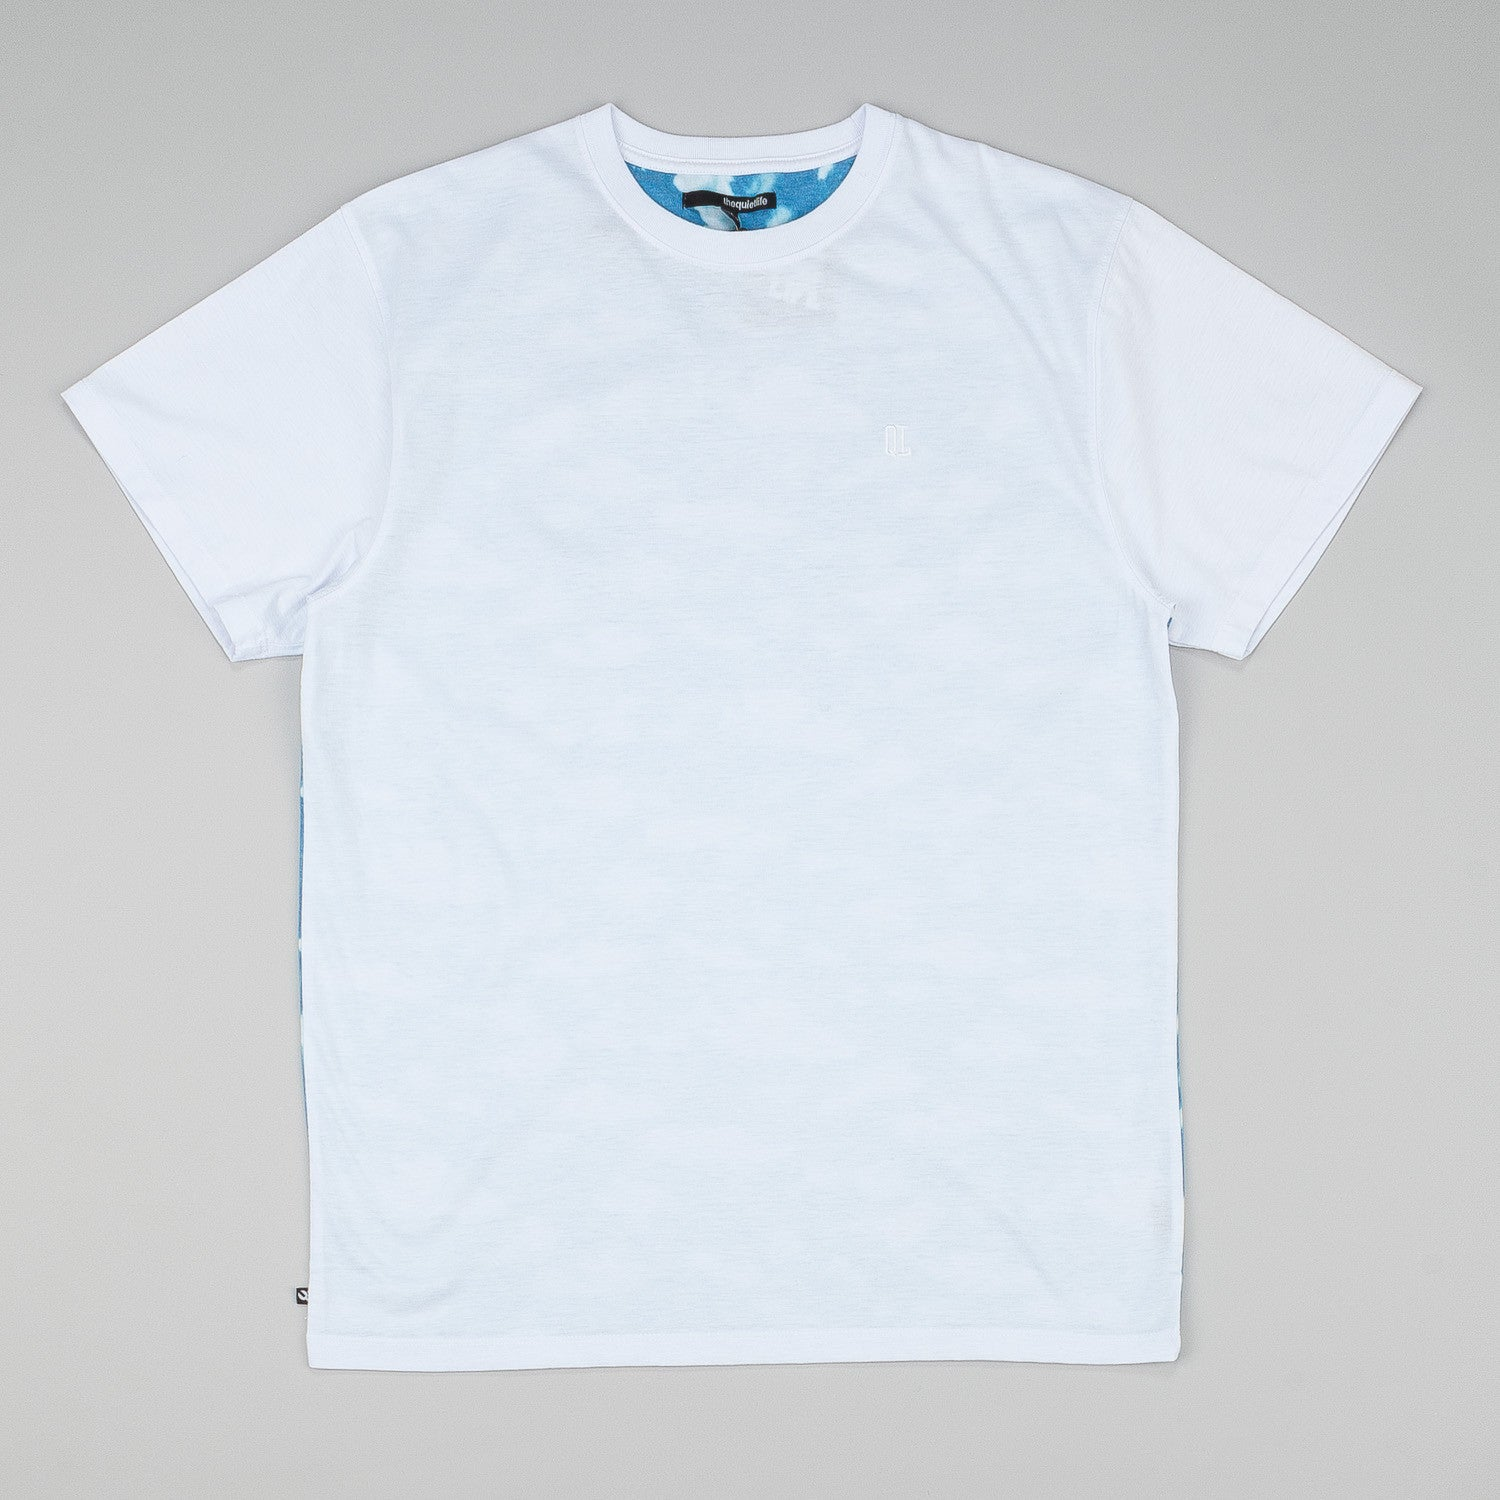 The Quiet Life Clouds T-Shirt